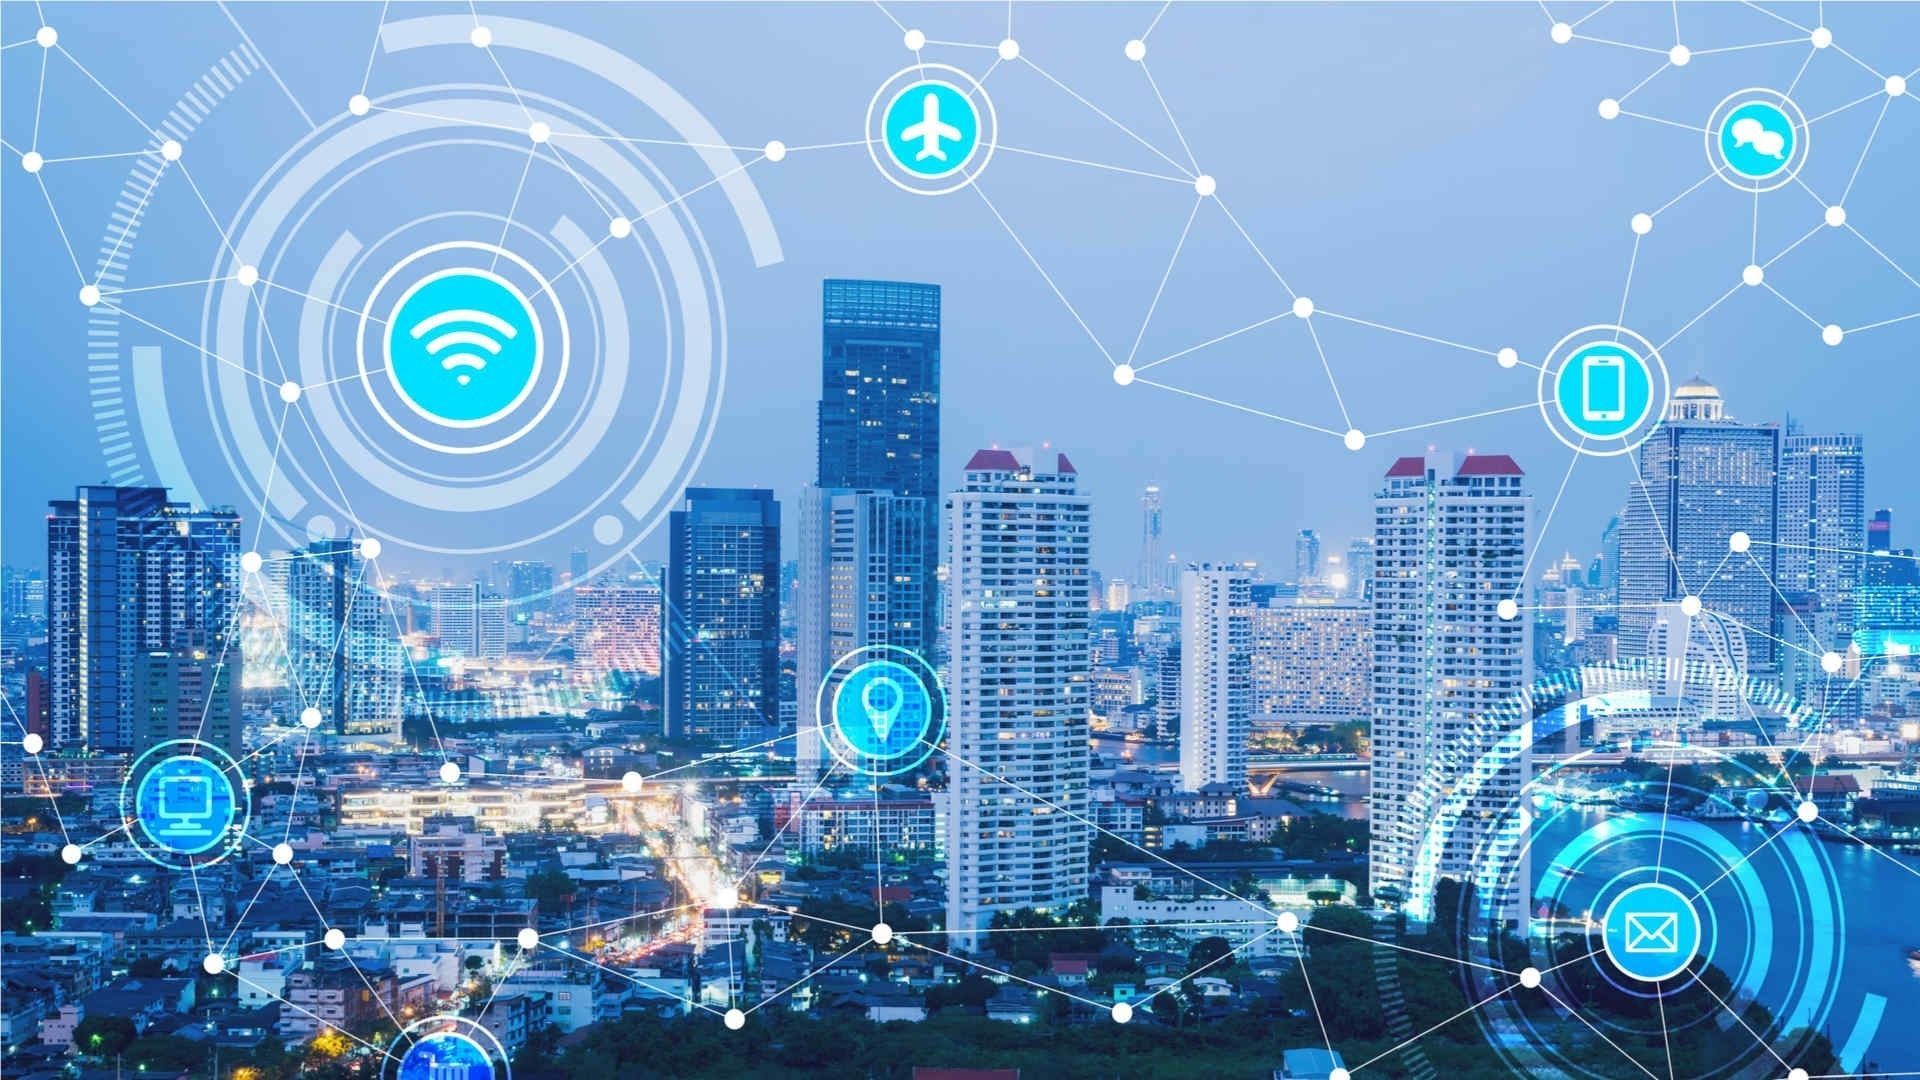 THE CITY OF THE FUTURE IS SMART: WHAT IS A SMART CITY?